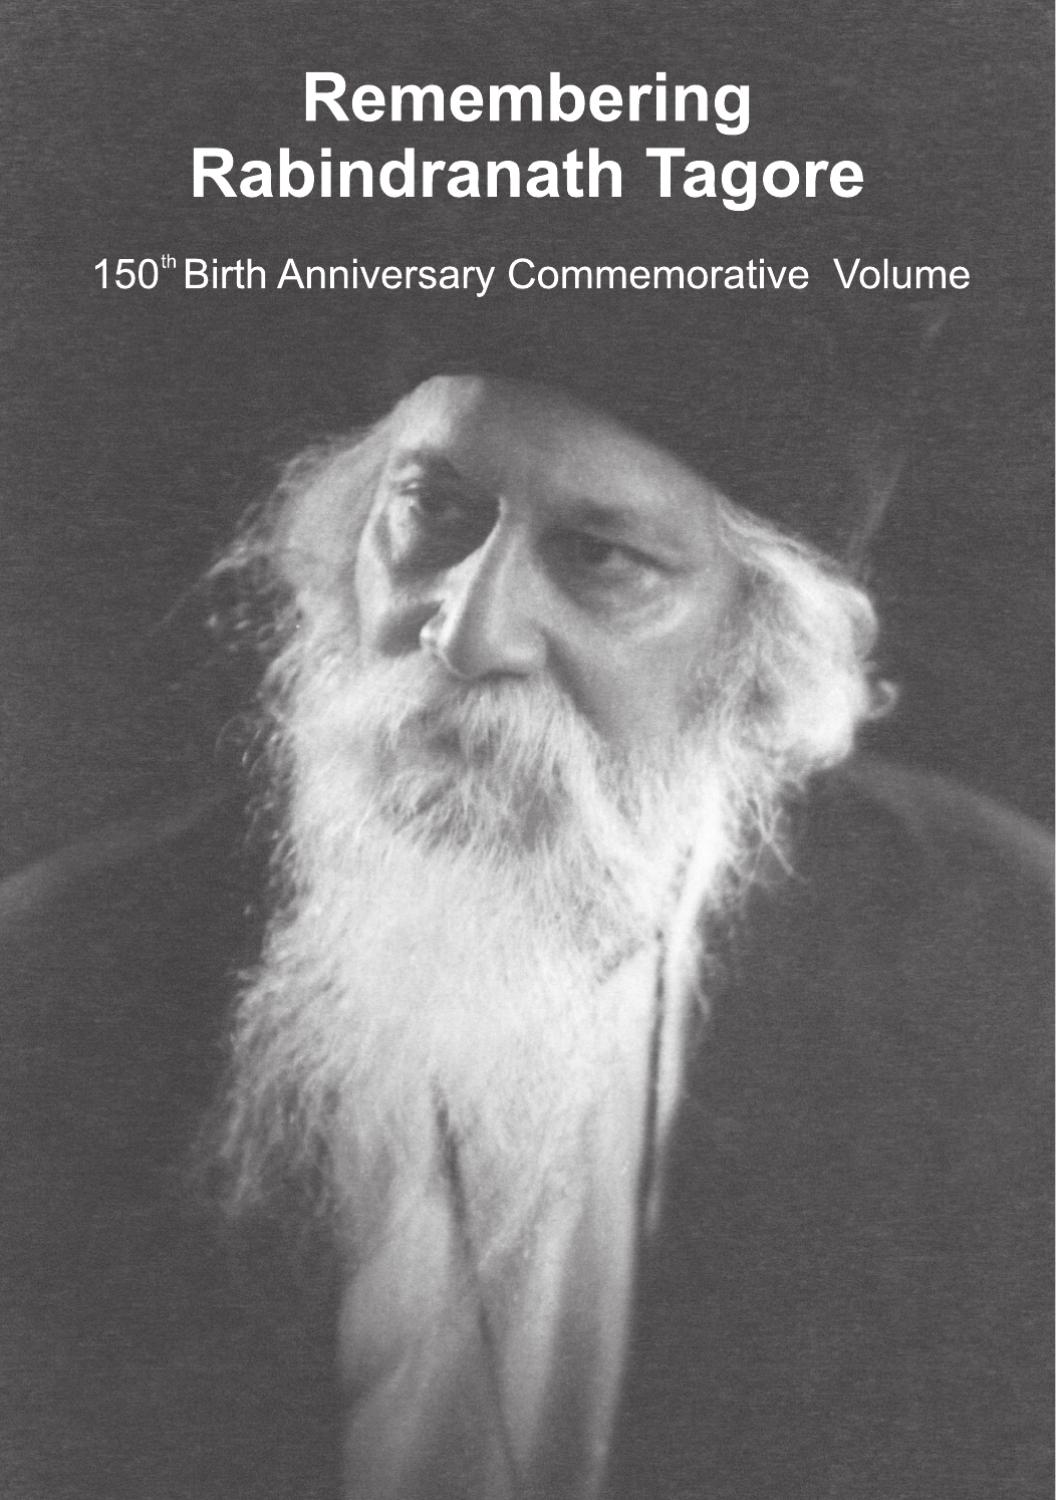 perspectives special issue on r n tagore by n perspectives special issue on r n tagore by n diplomacy